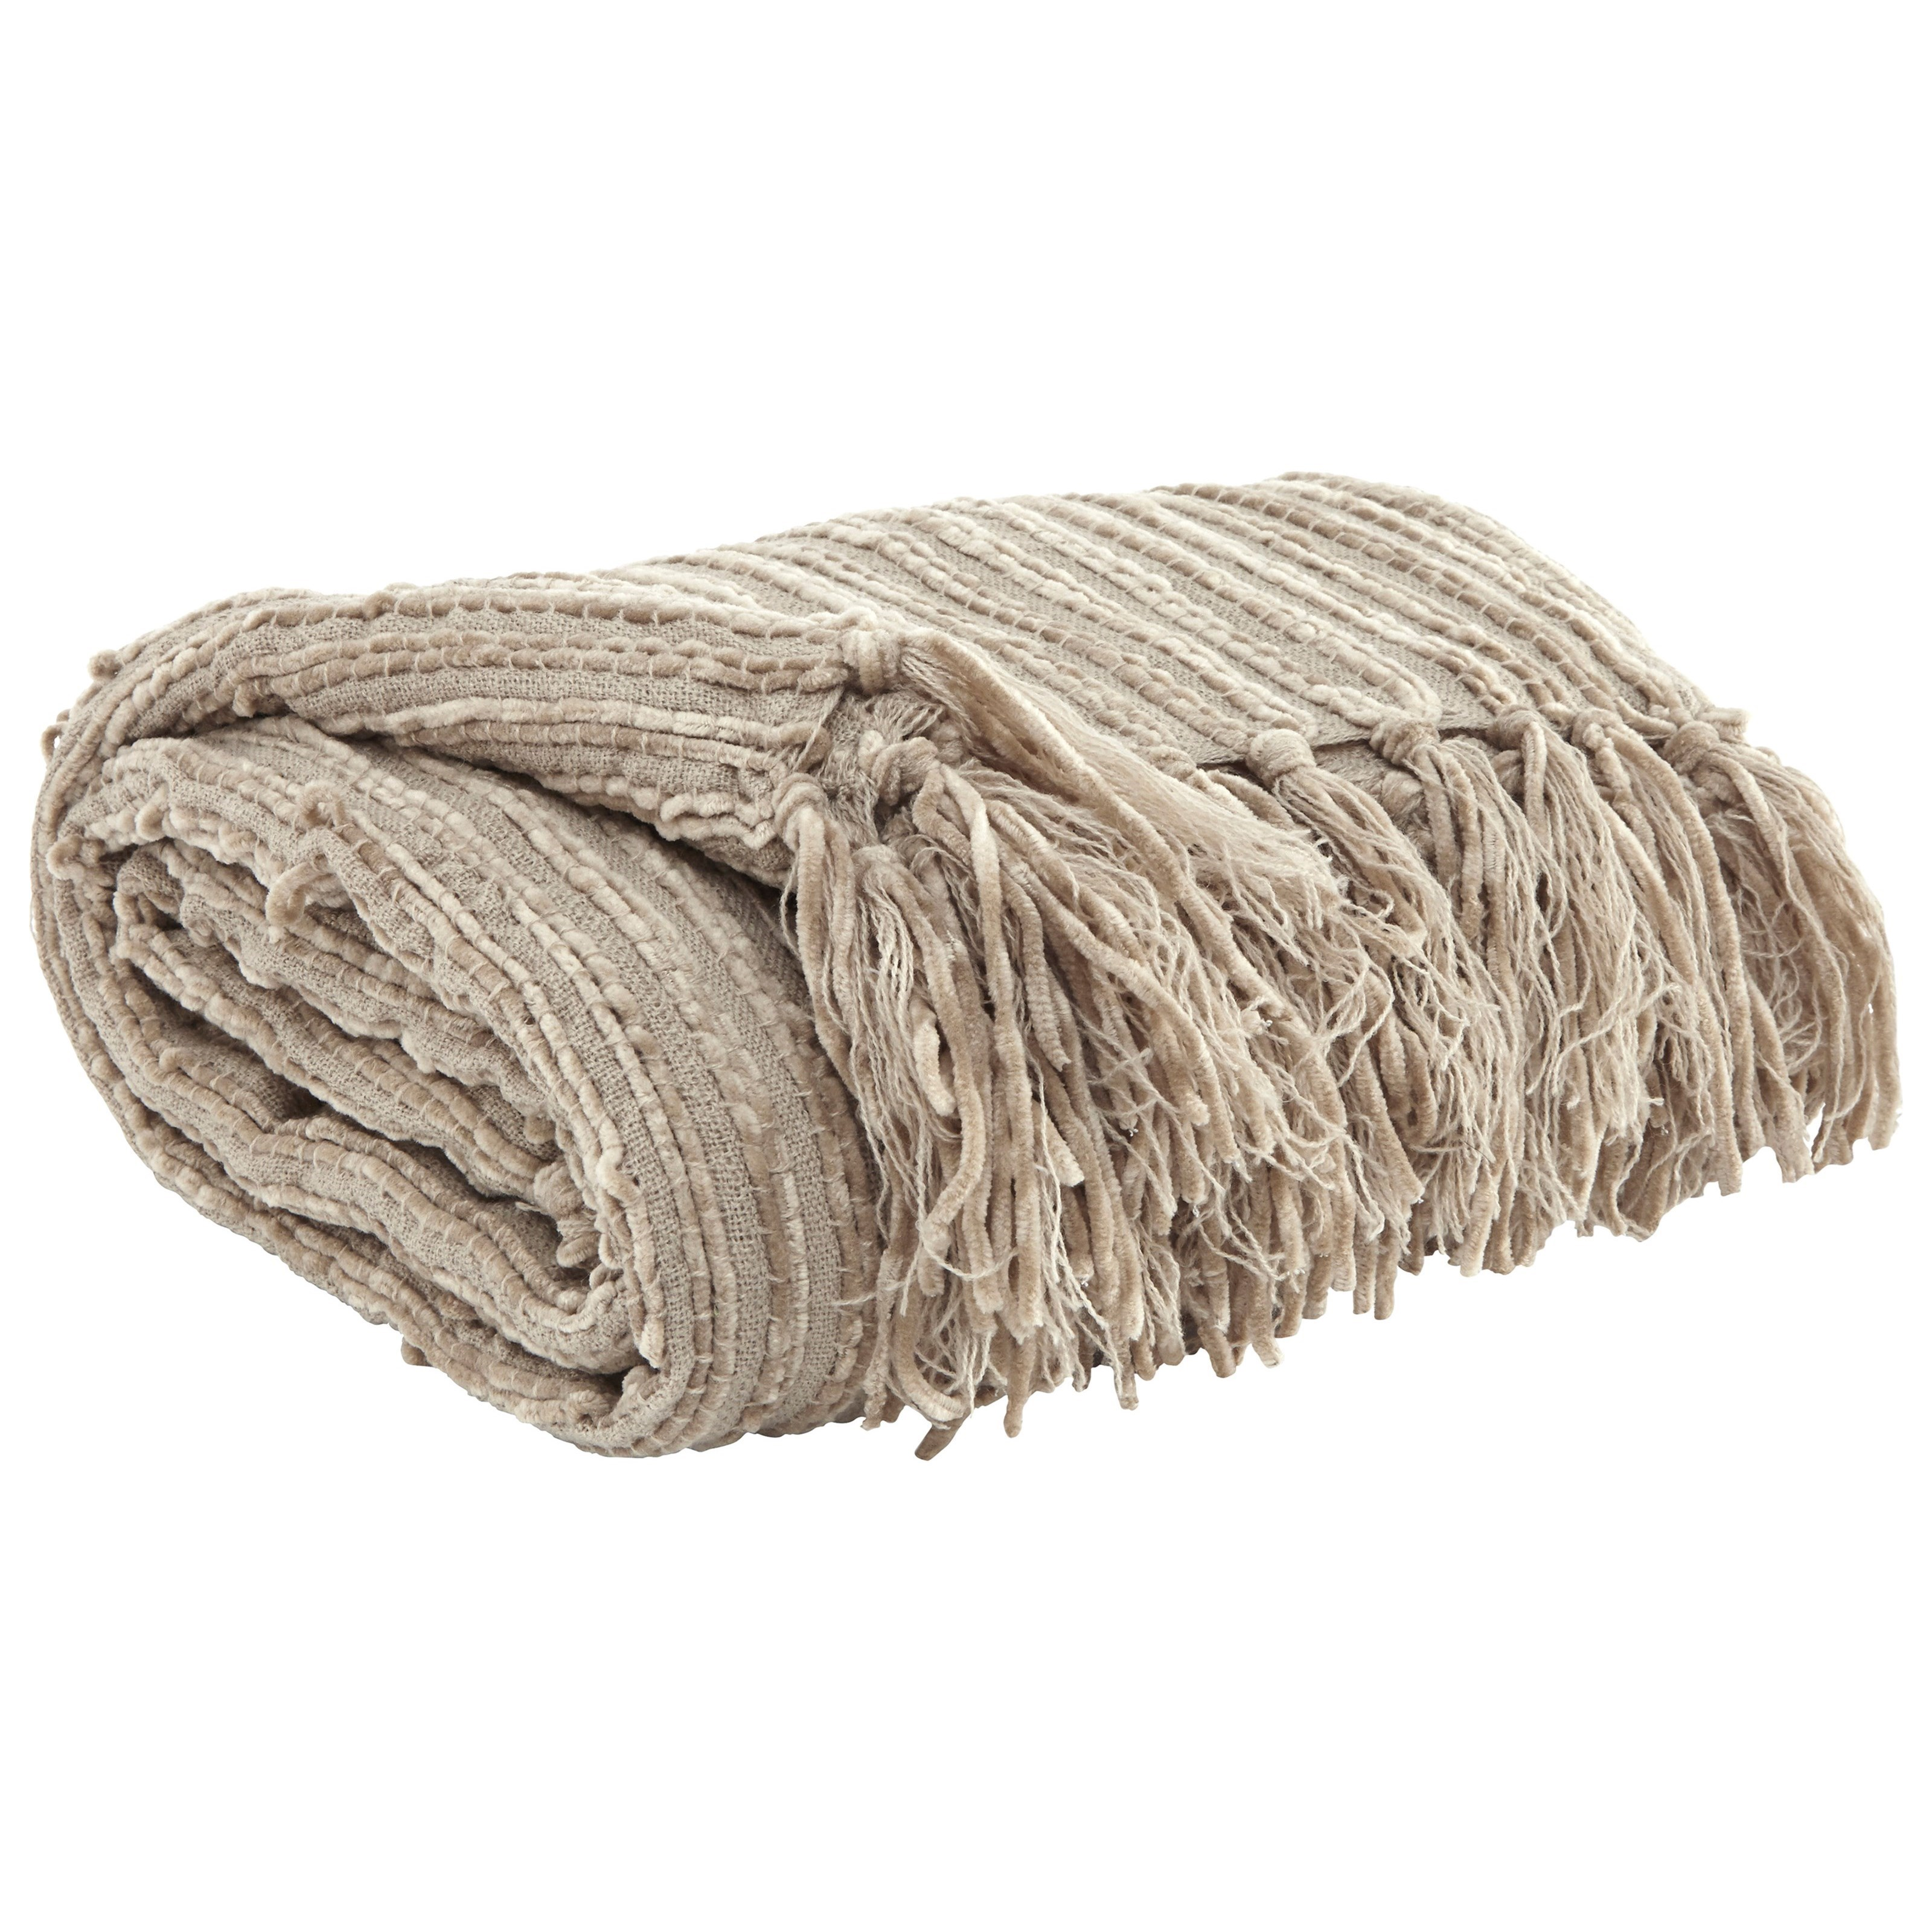 Throws Noland - Almond Throw by Signature Design by Ashley at Northeast Factory Direct